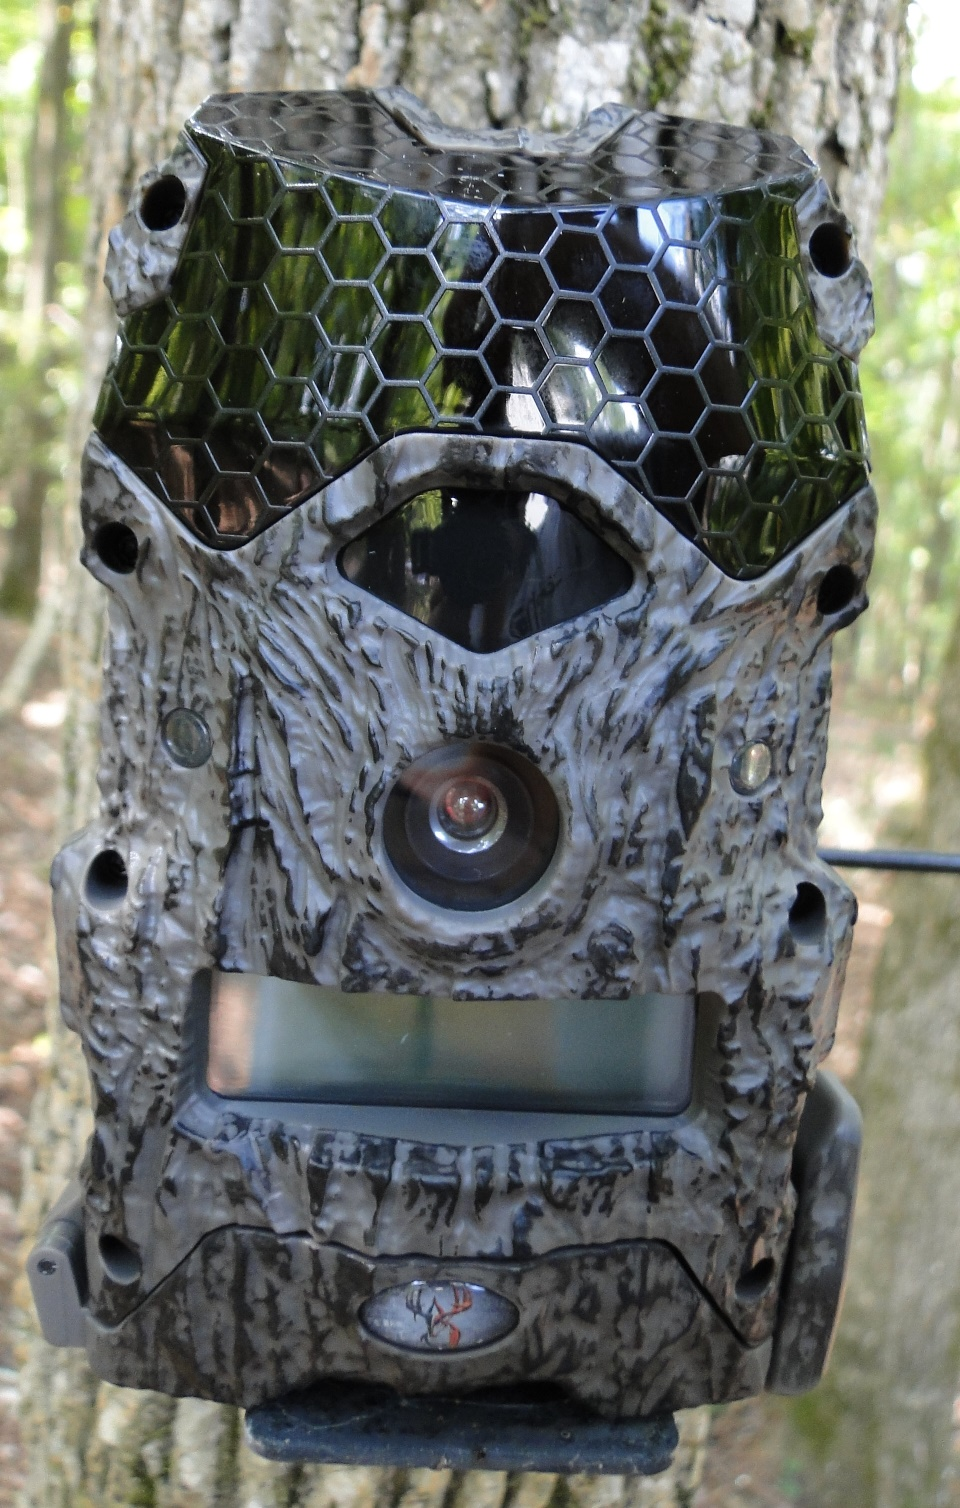 2017 Wildgame Mirage 16 Lightsout Camera review